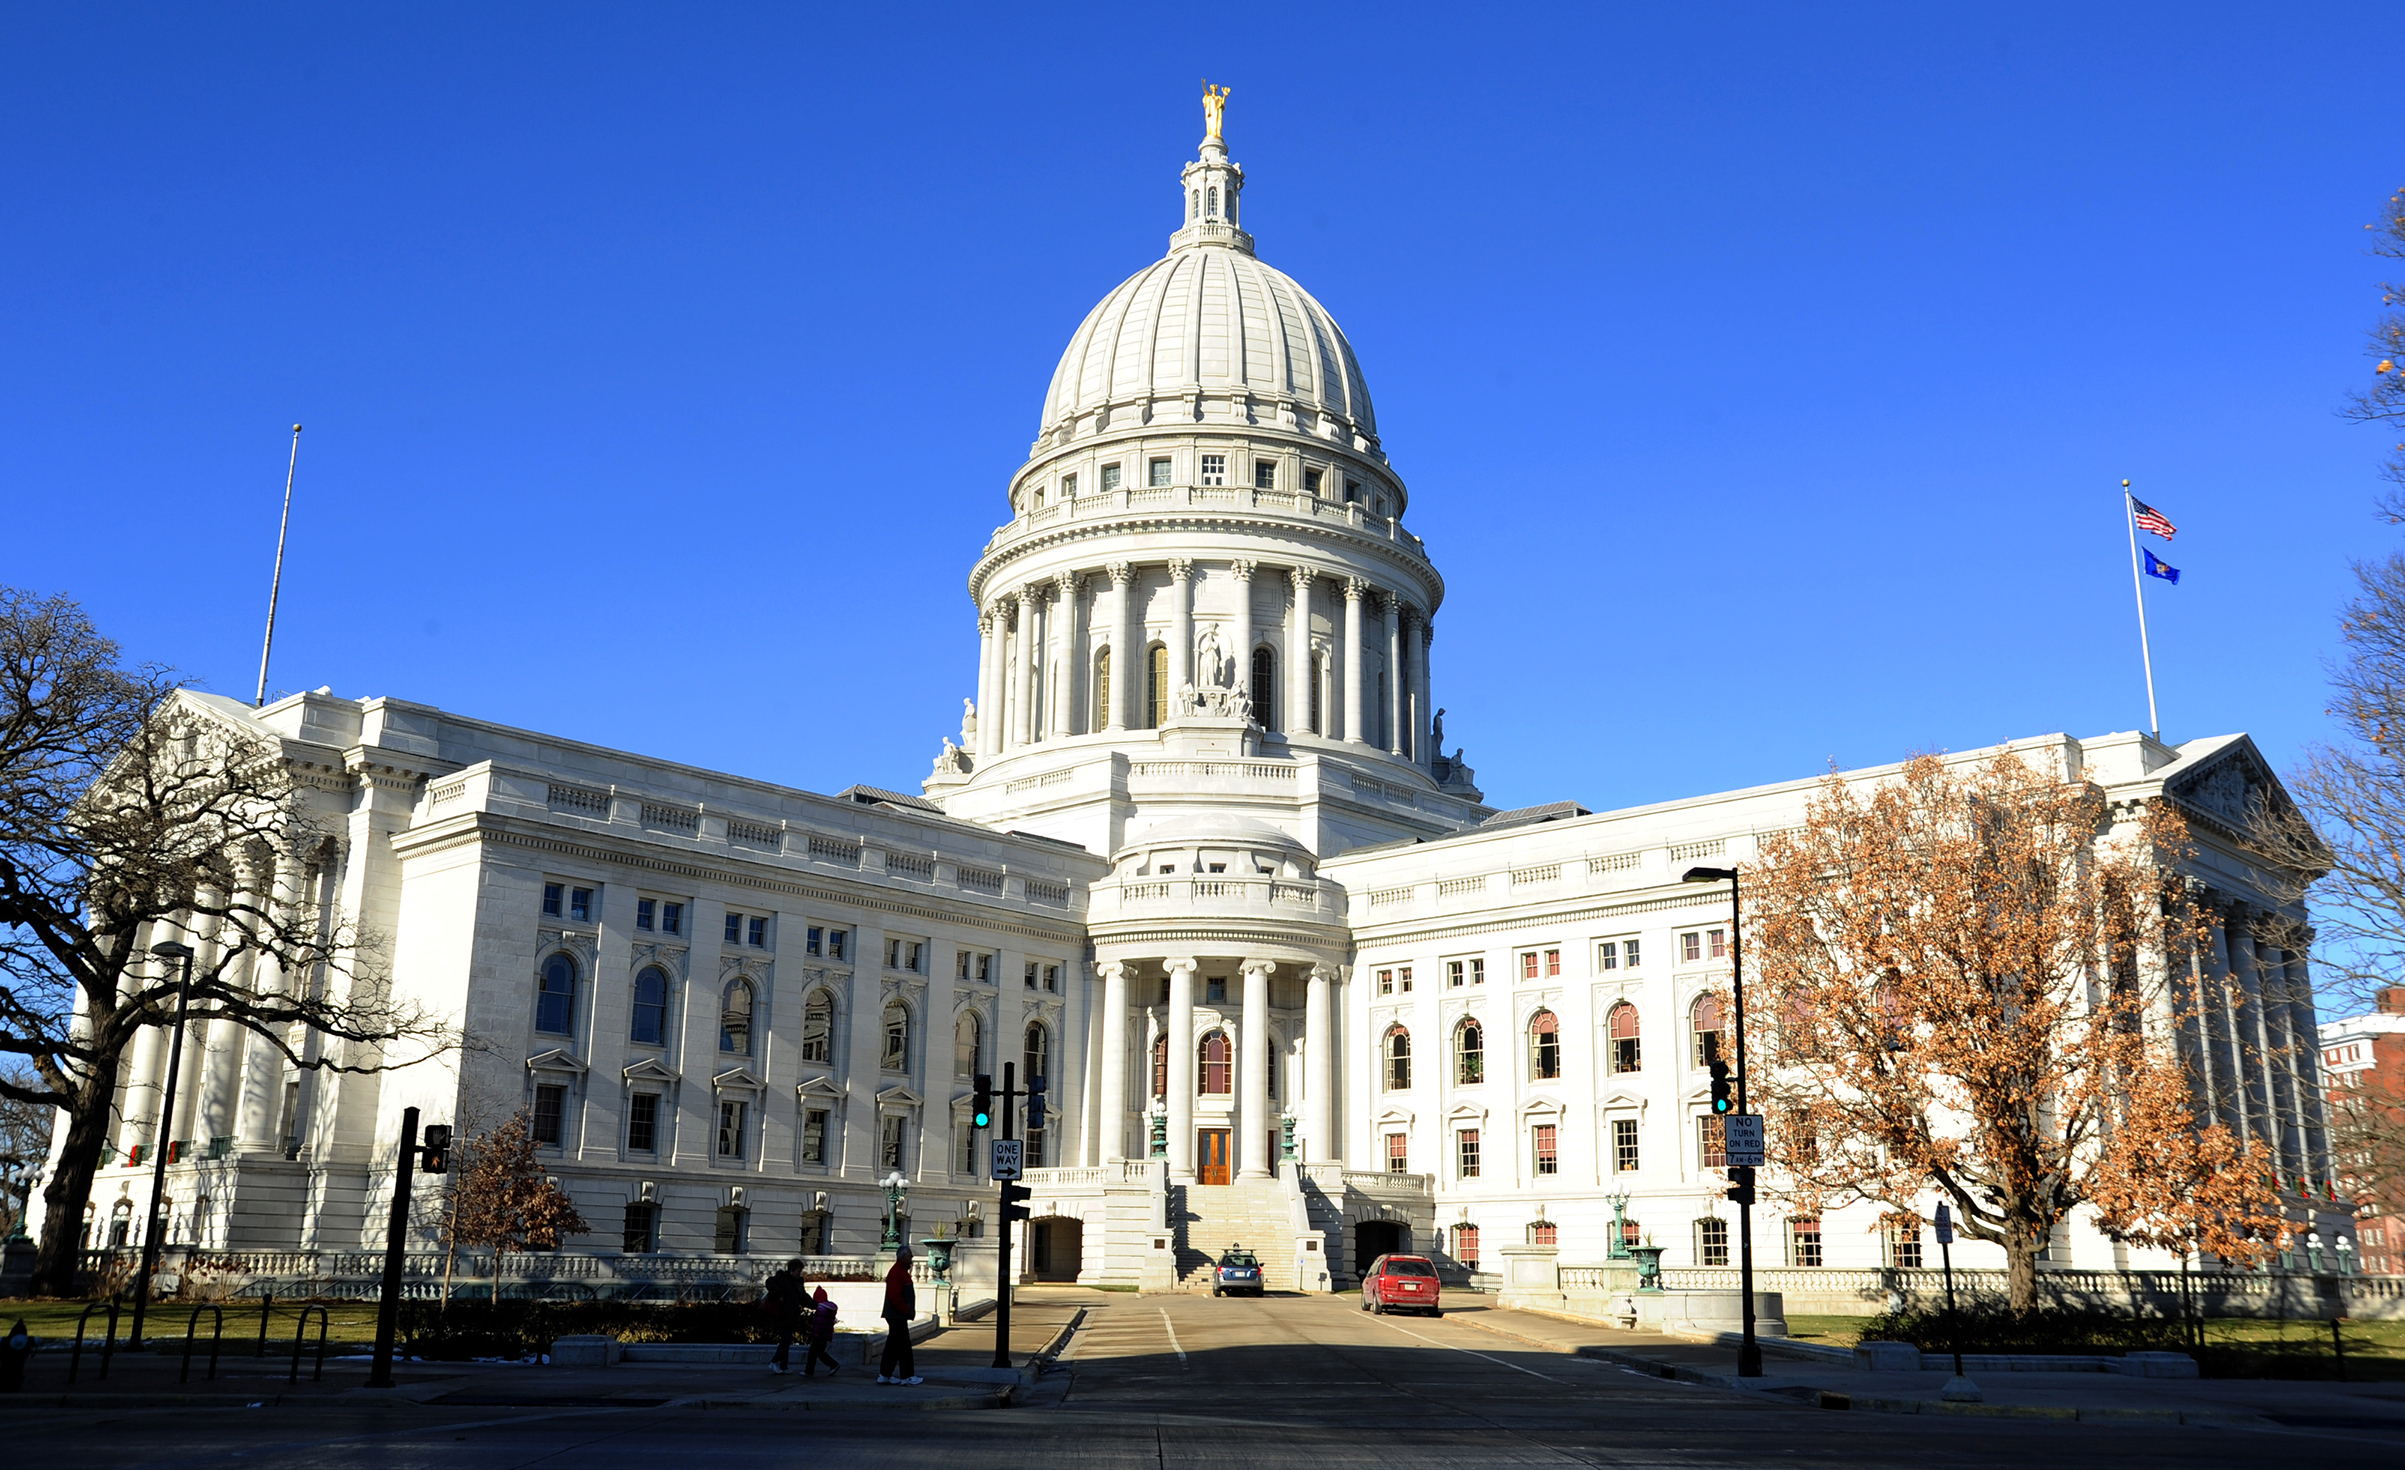 The Wisconsin State Capitol building on Madison, Wisconsin on Dec. 24, 2011.